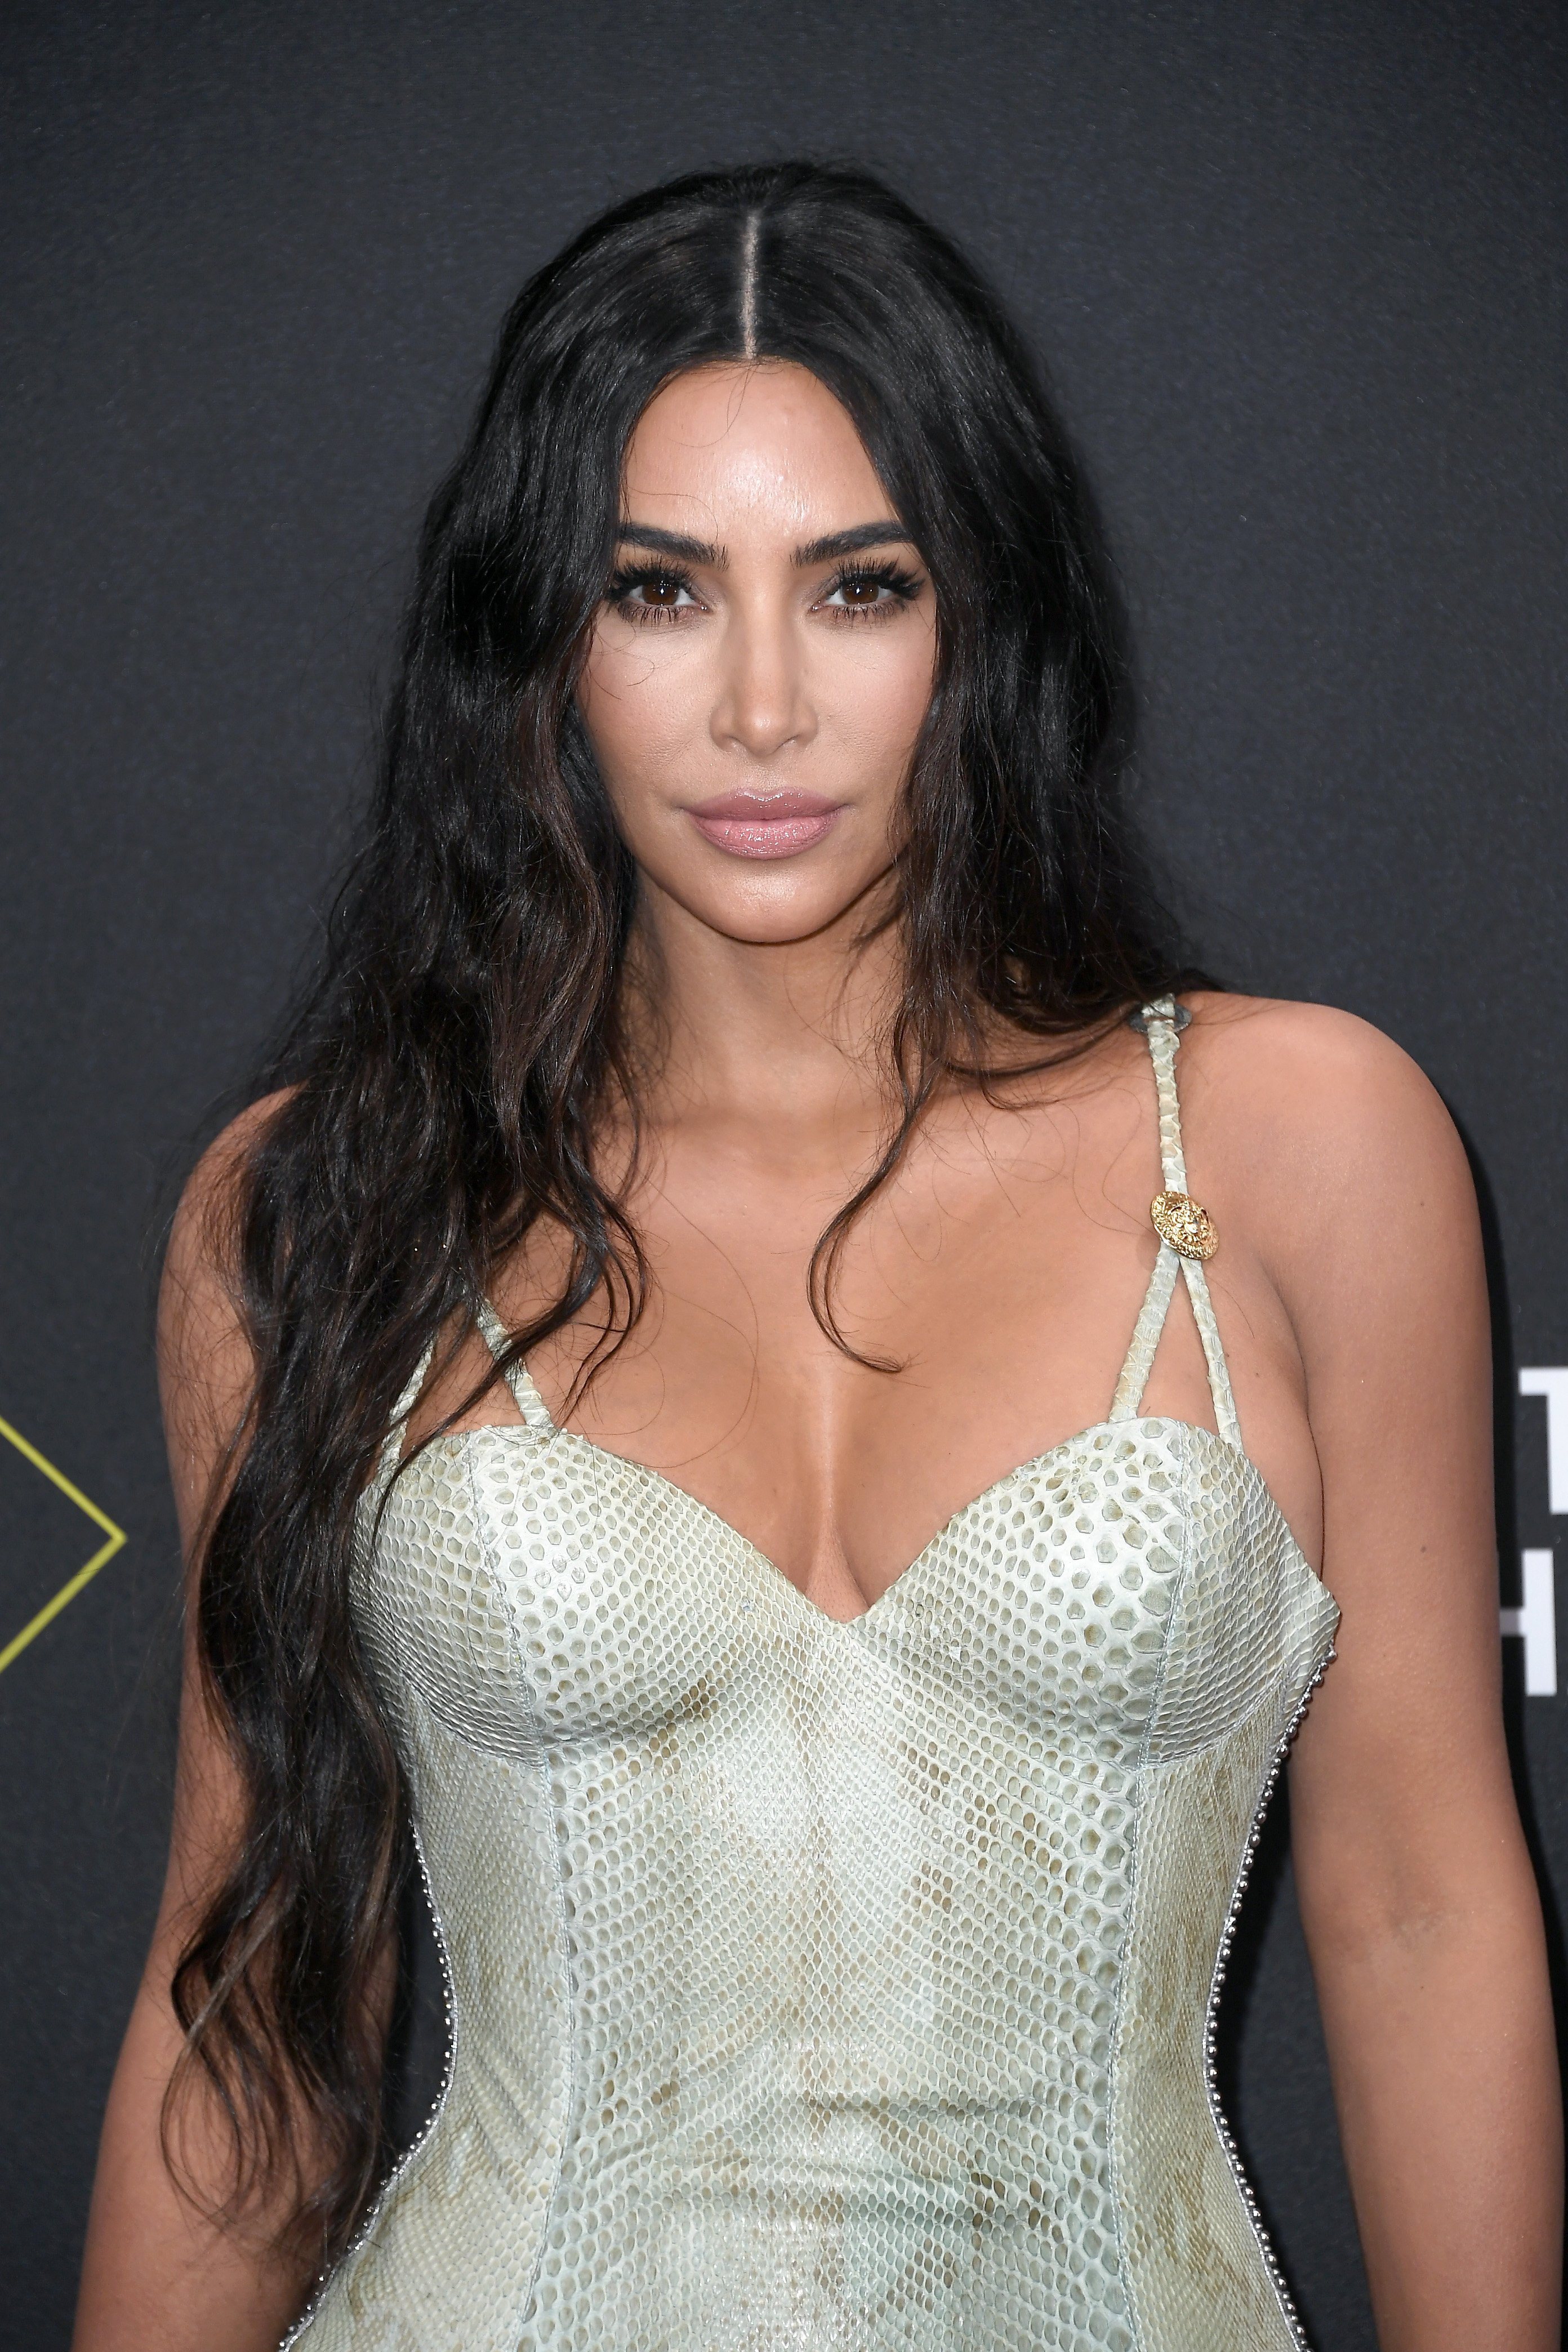 Kim Kardashian at the 2019 E! People's Choice Awards | Source: Getty Images